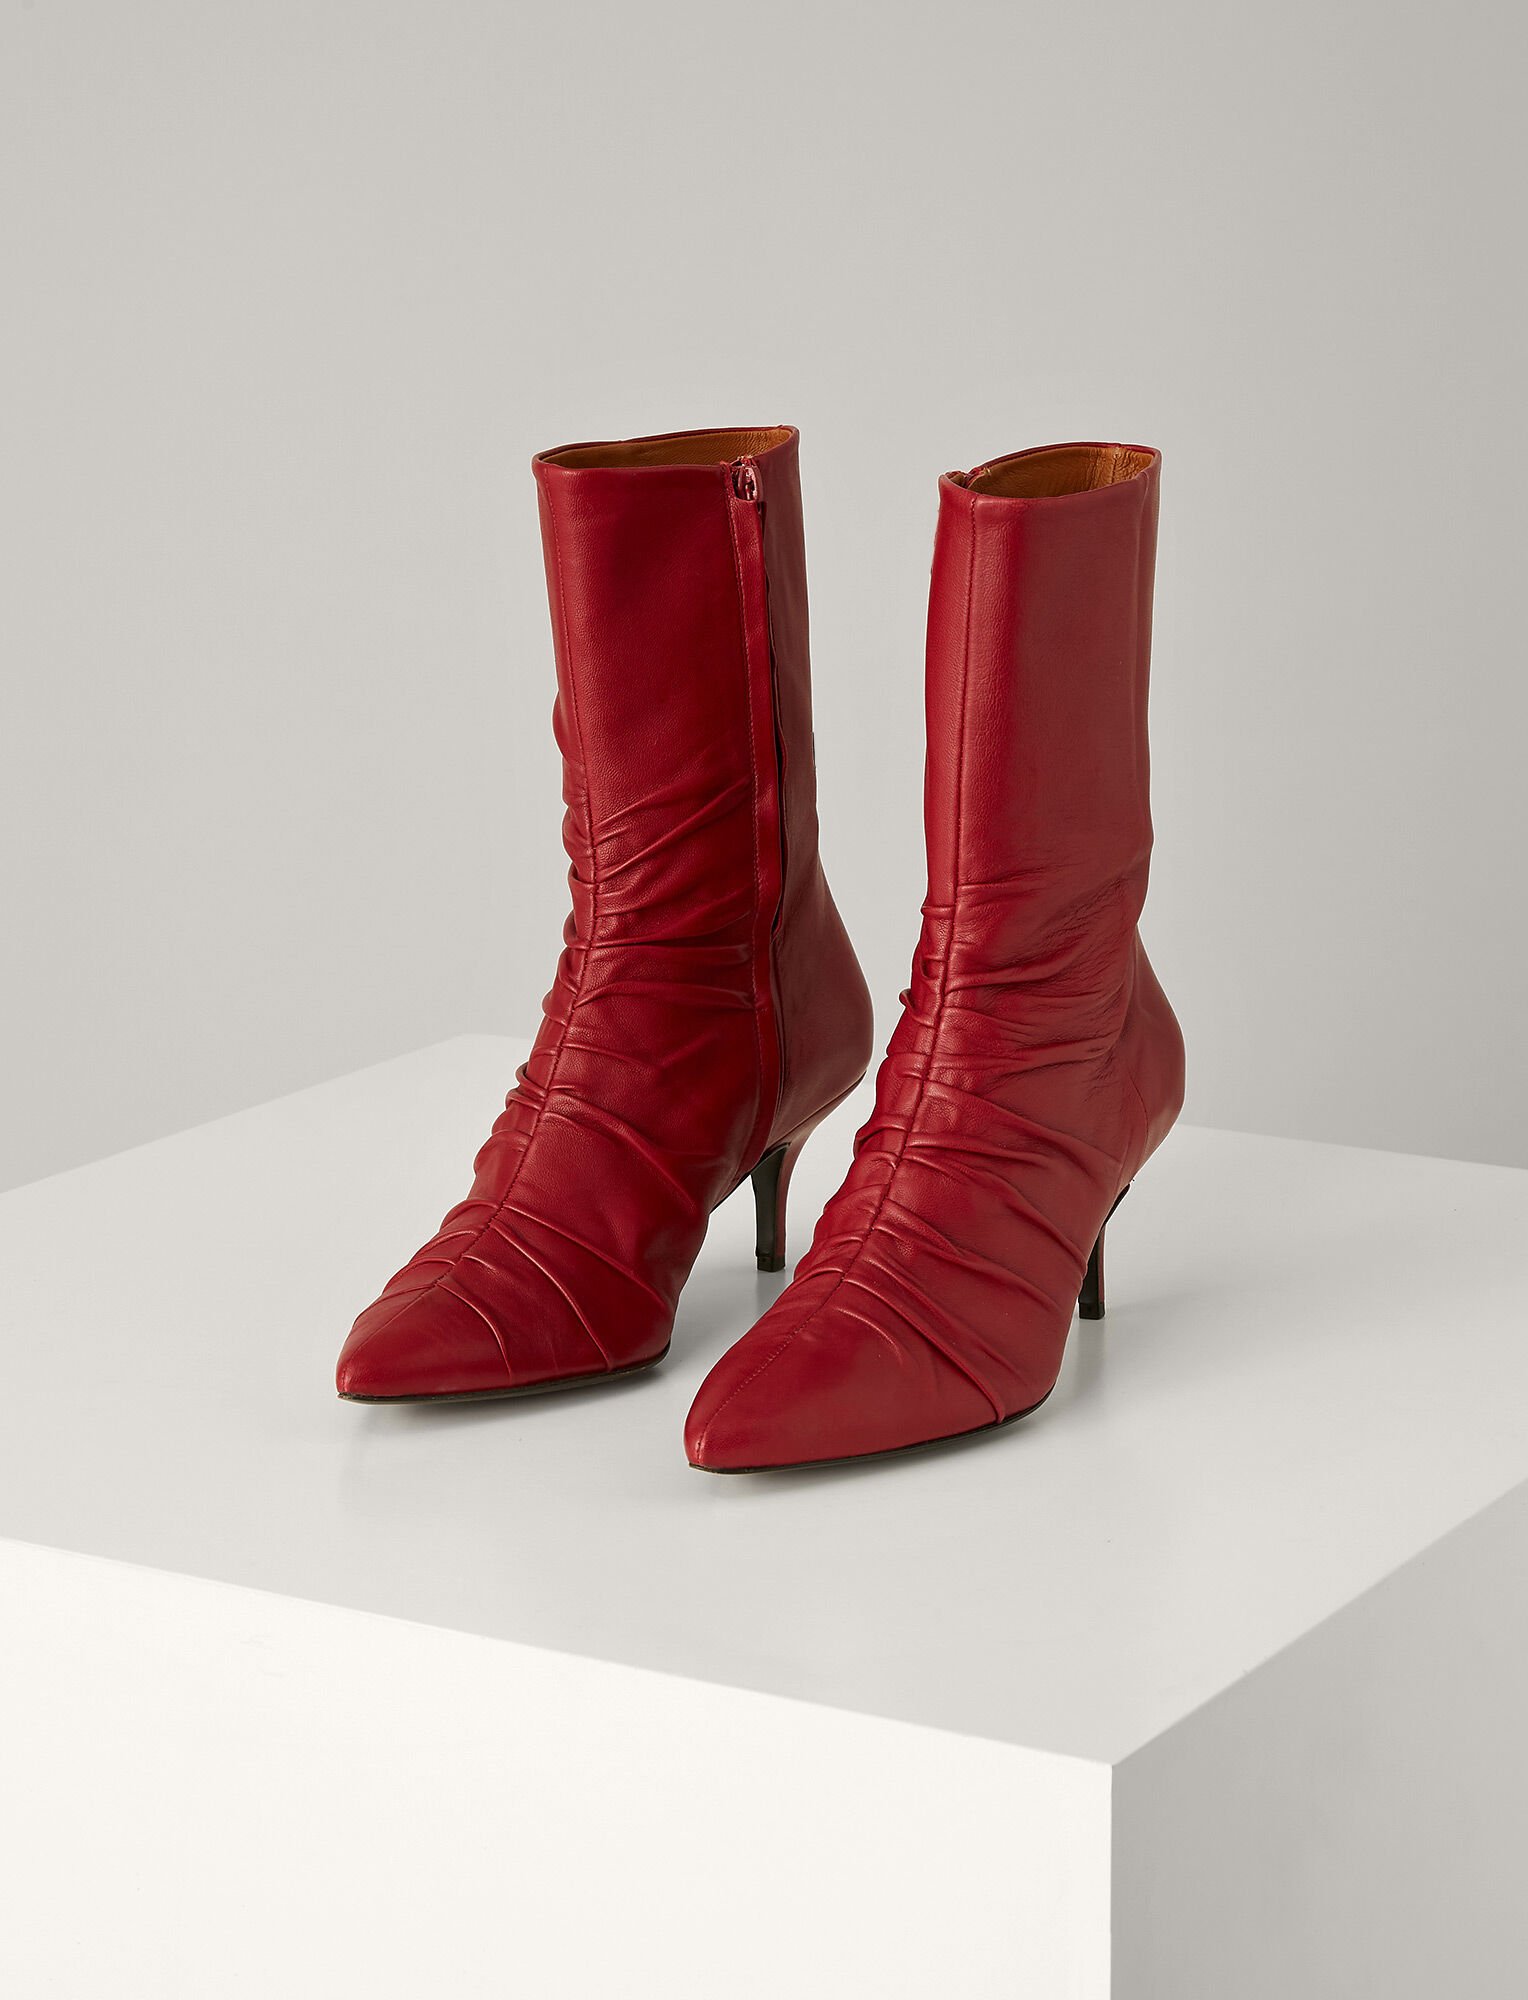 Joseph, Bianca Leather Ankle Boot, in GARNET